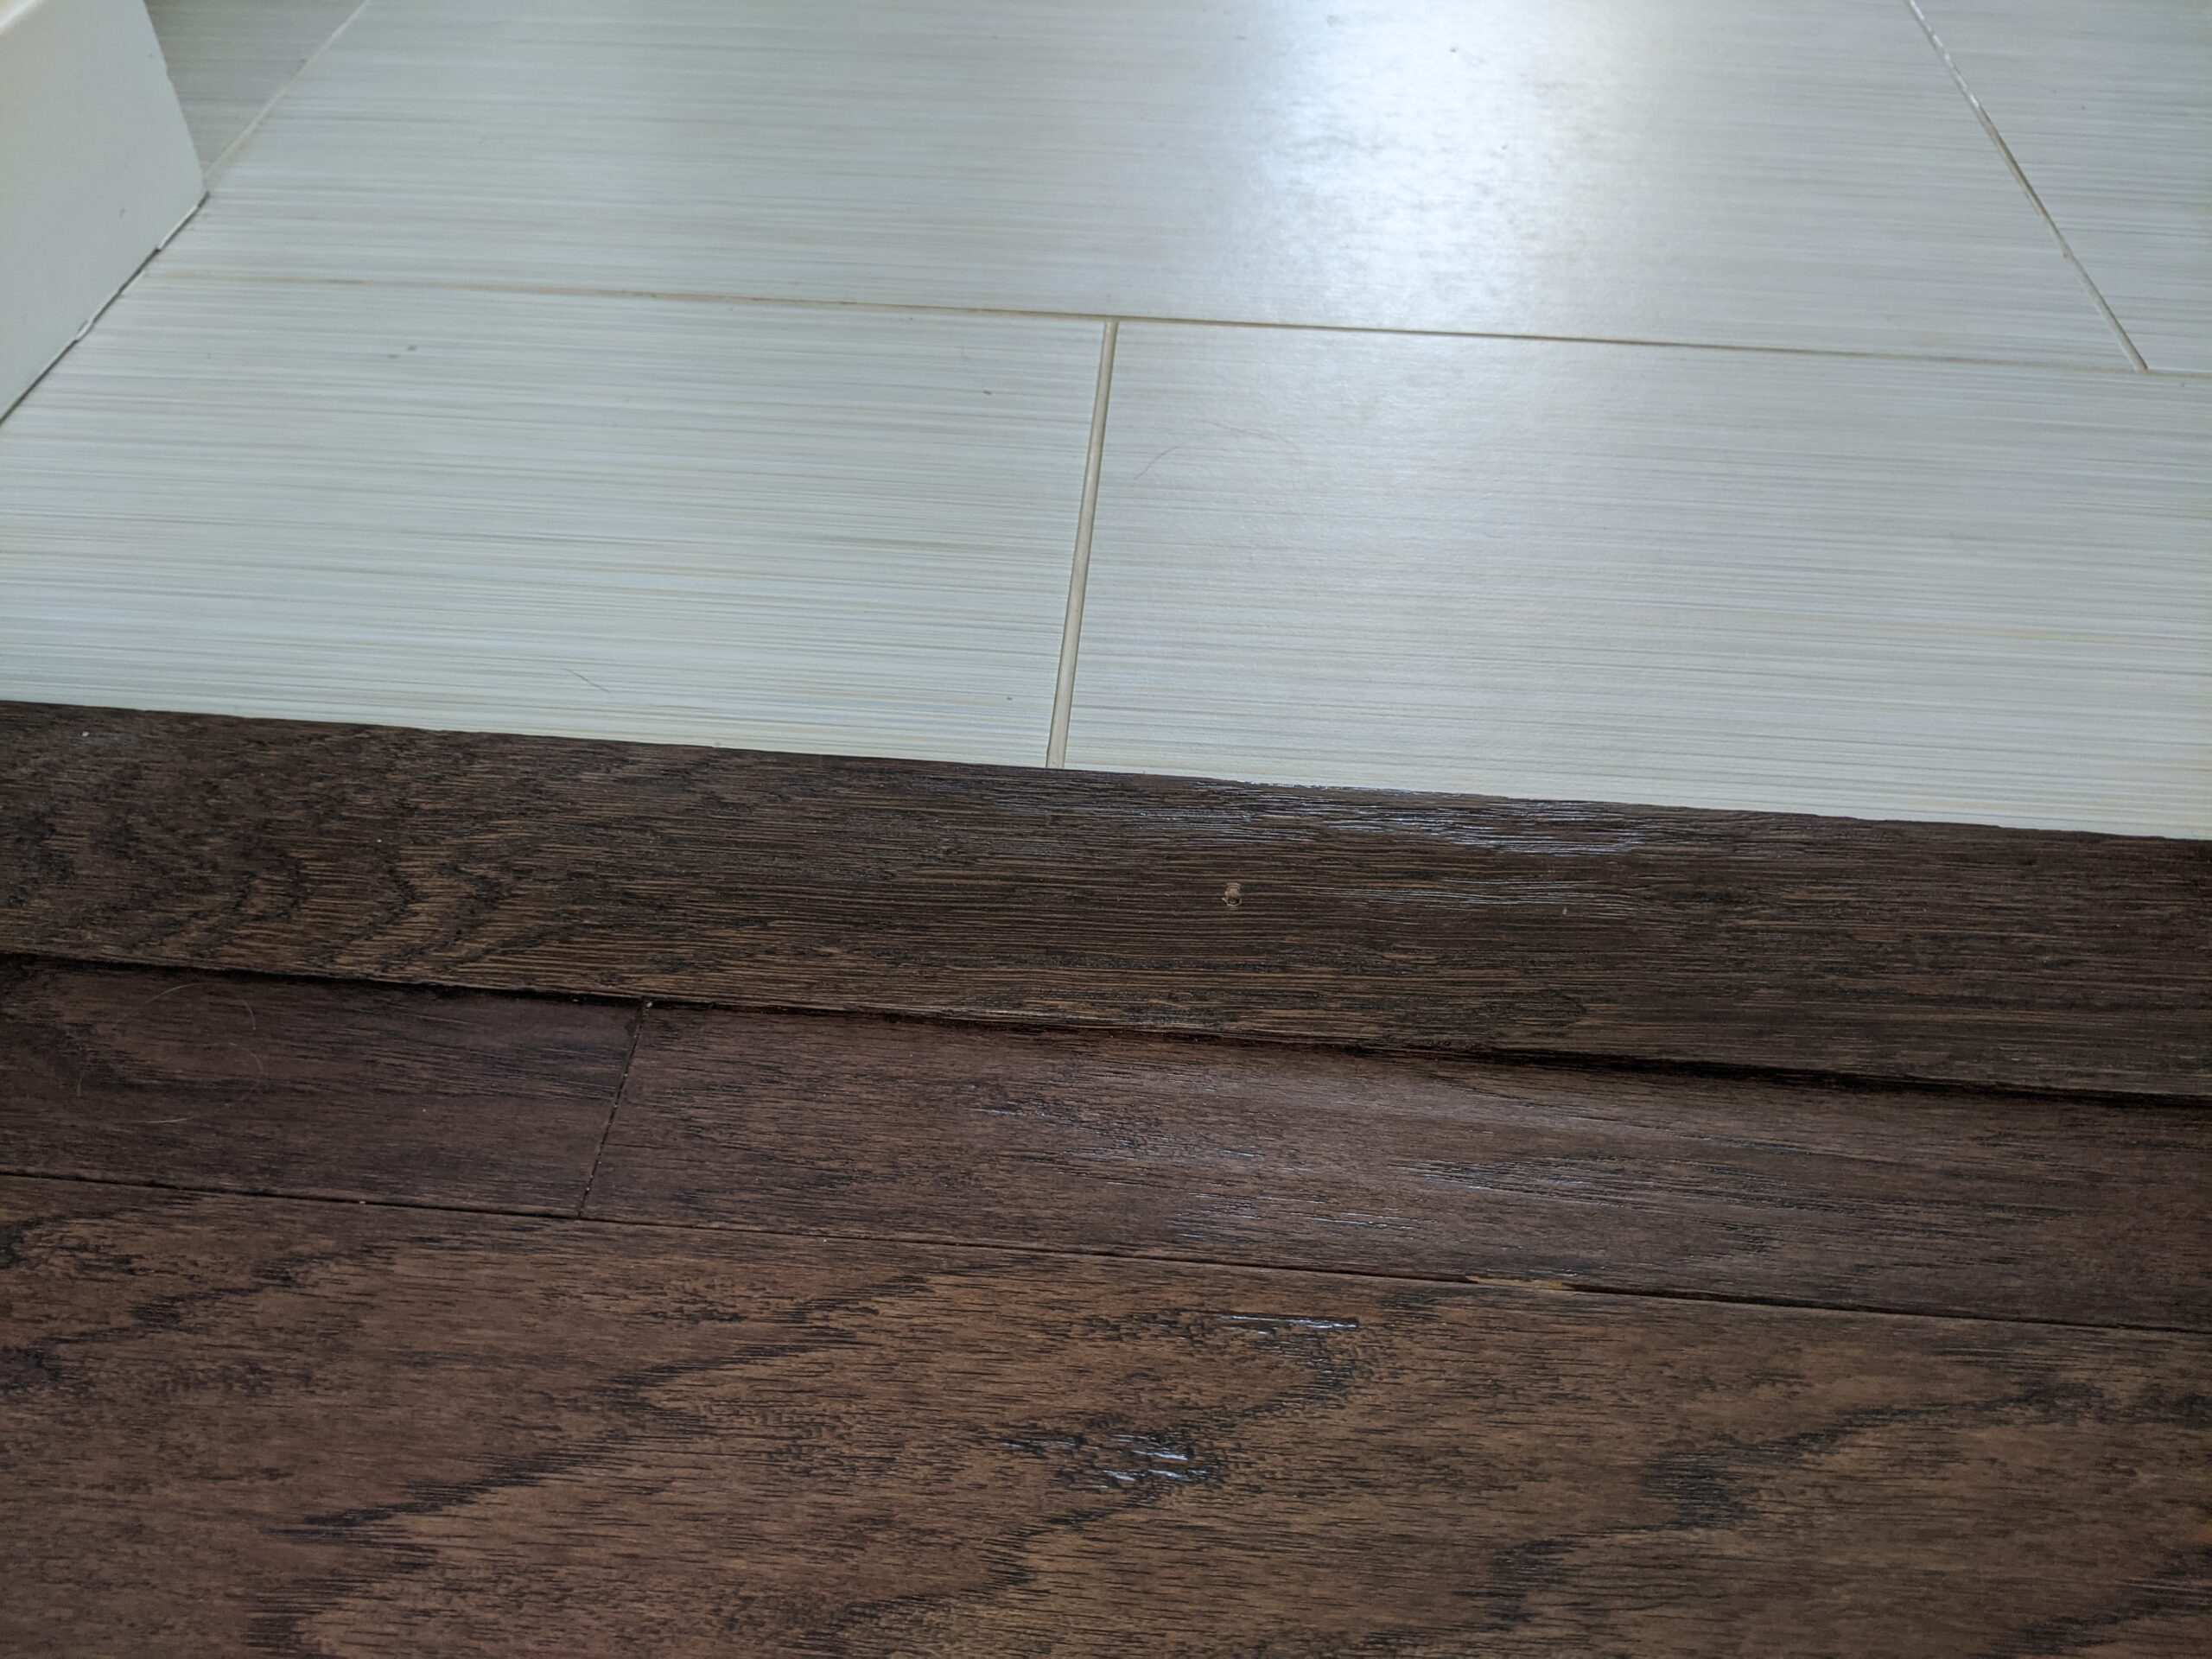 We needed transition pieces for wherever the wood floor touched the tiles, but saved time and money by buying in-stock pieces with a matching wood tone, rather than ordering it from the specific floor manufacturer.